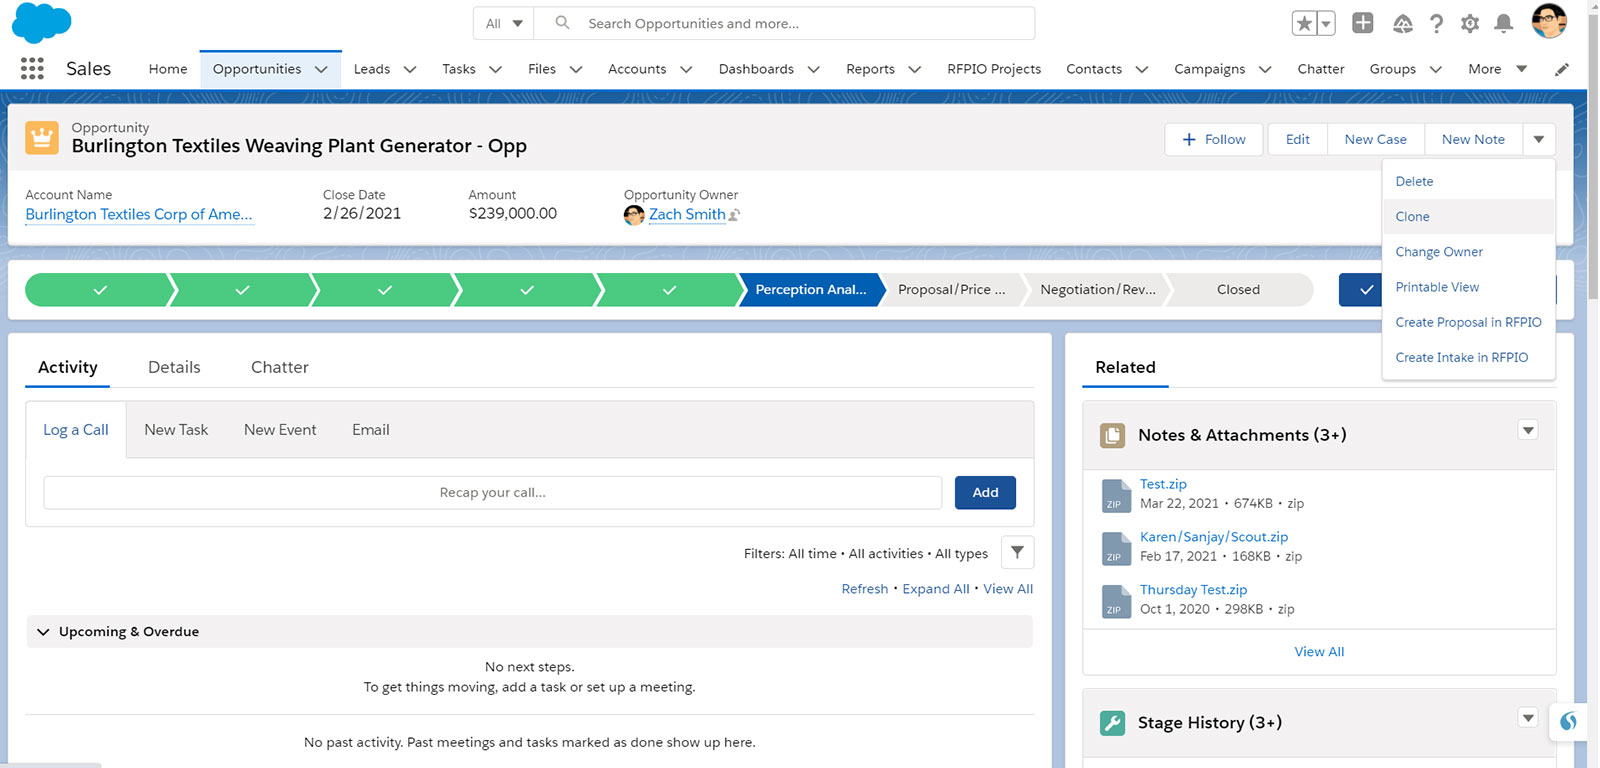 Initiate a proactive proposal project directly from Salesforce